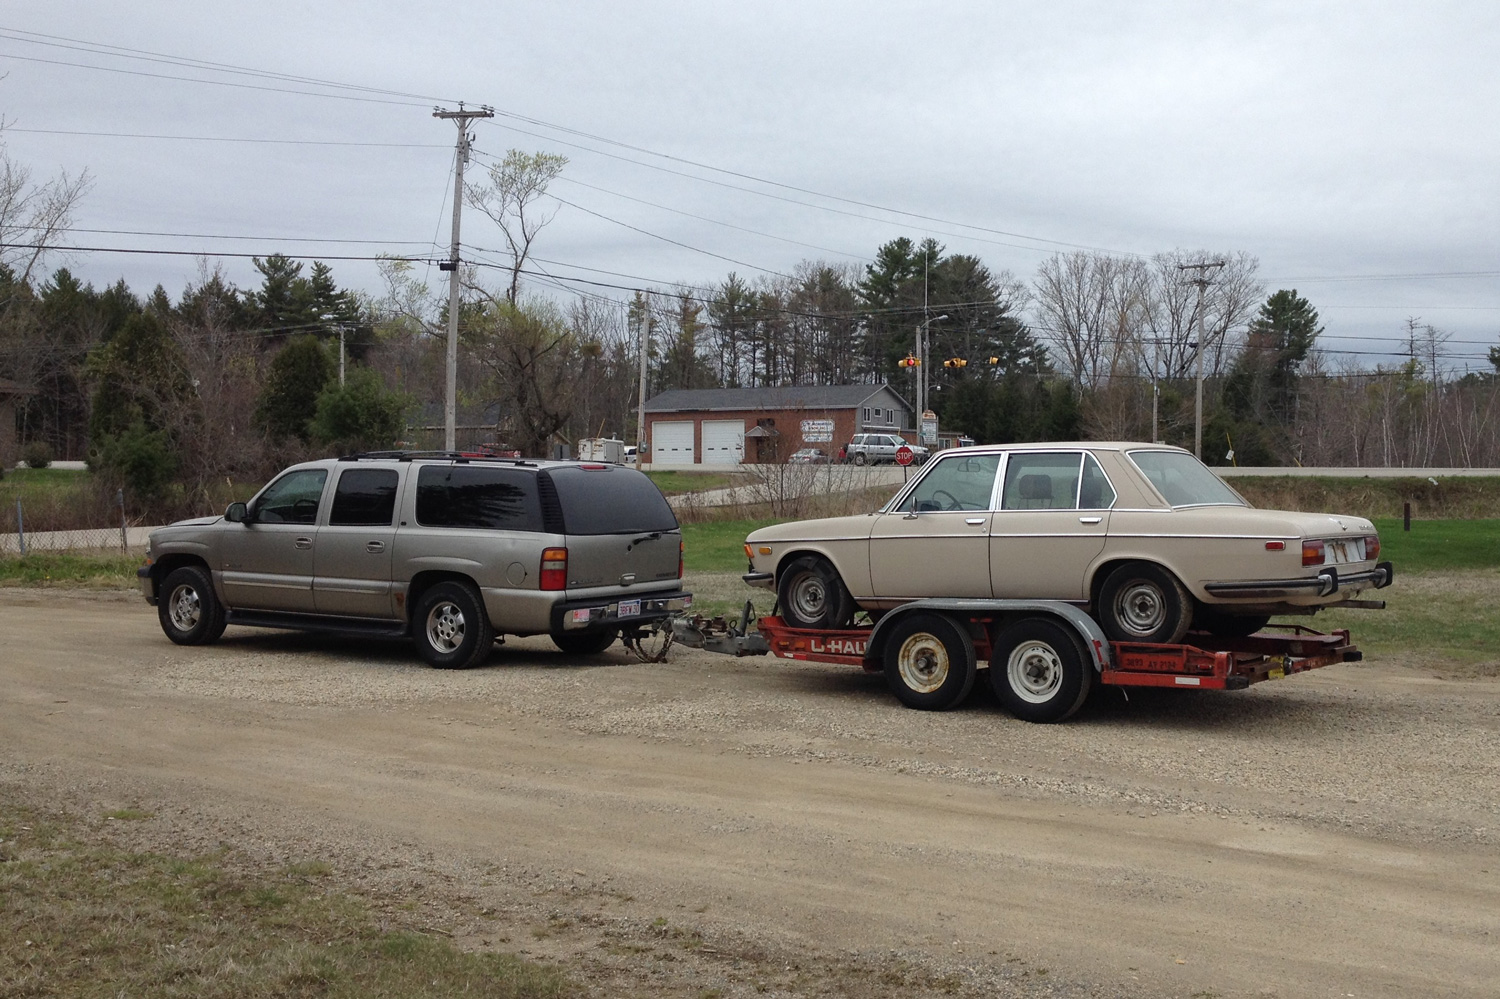 The oft-used combo of one of my Suburbans towing a U-Haul auto transport so I could bring my BMW Bavaria home.